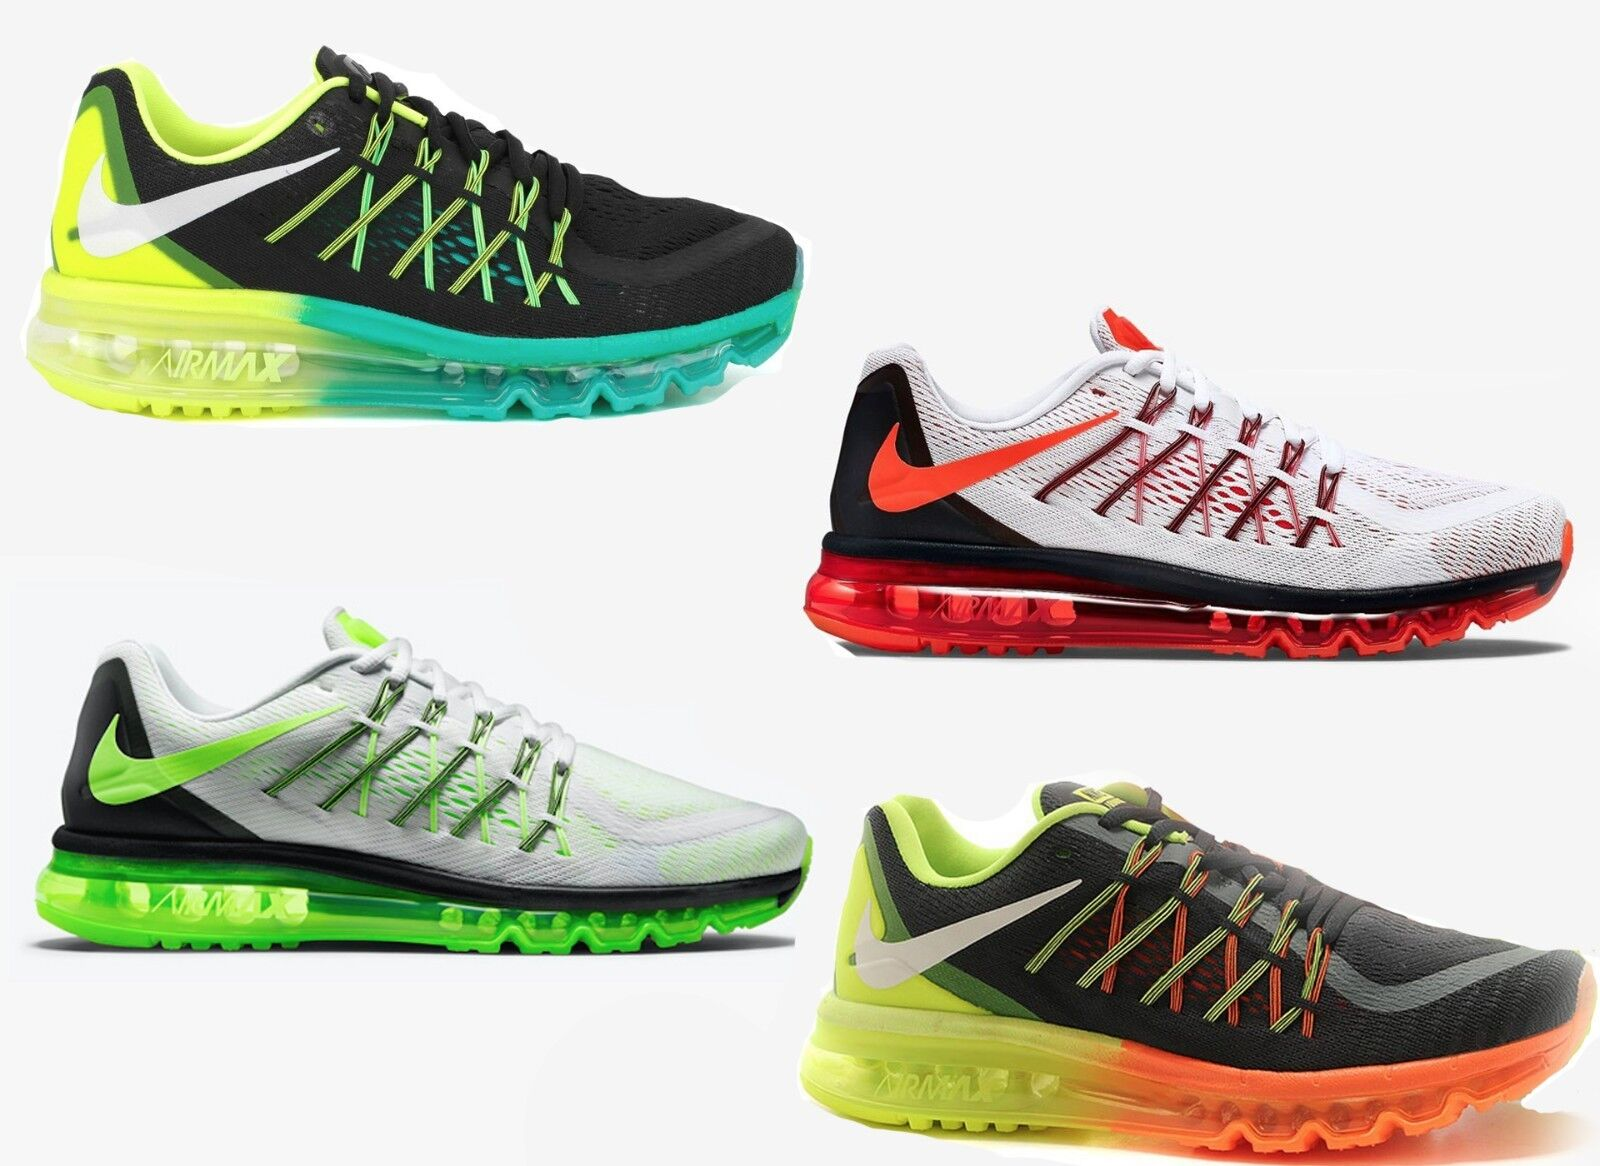 Nike Air Max 2015 Brand New Men's Shoes